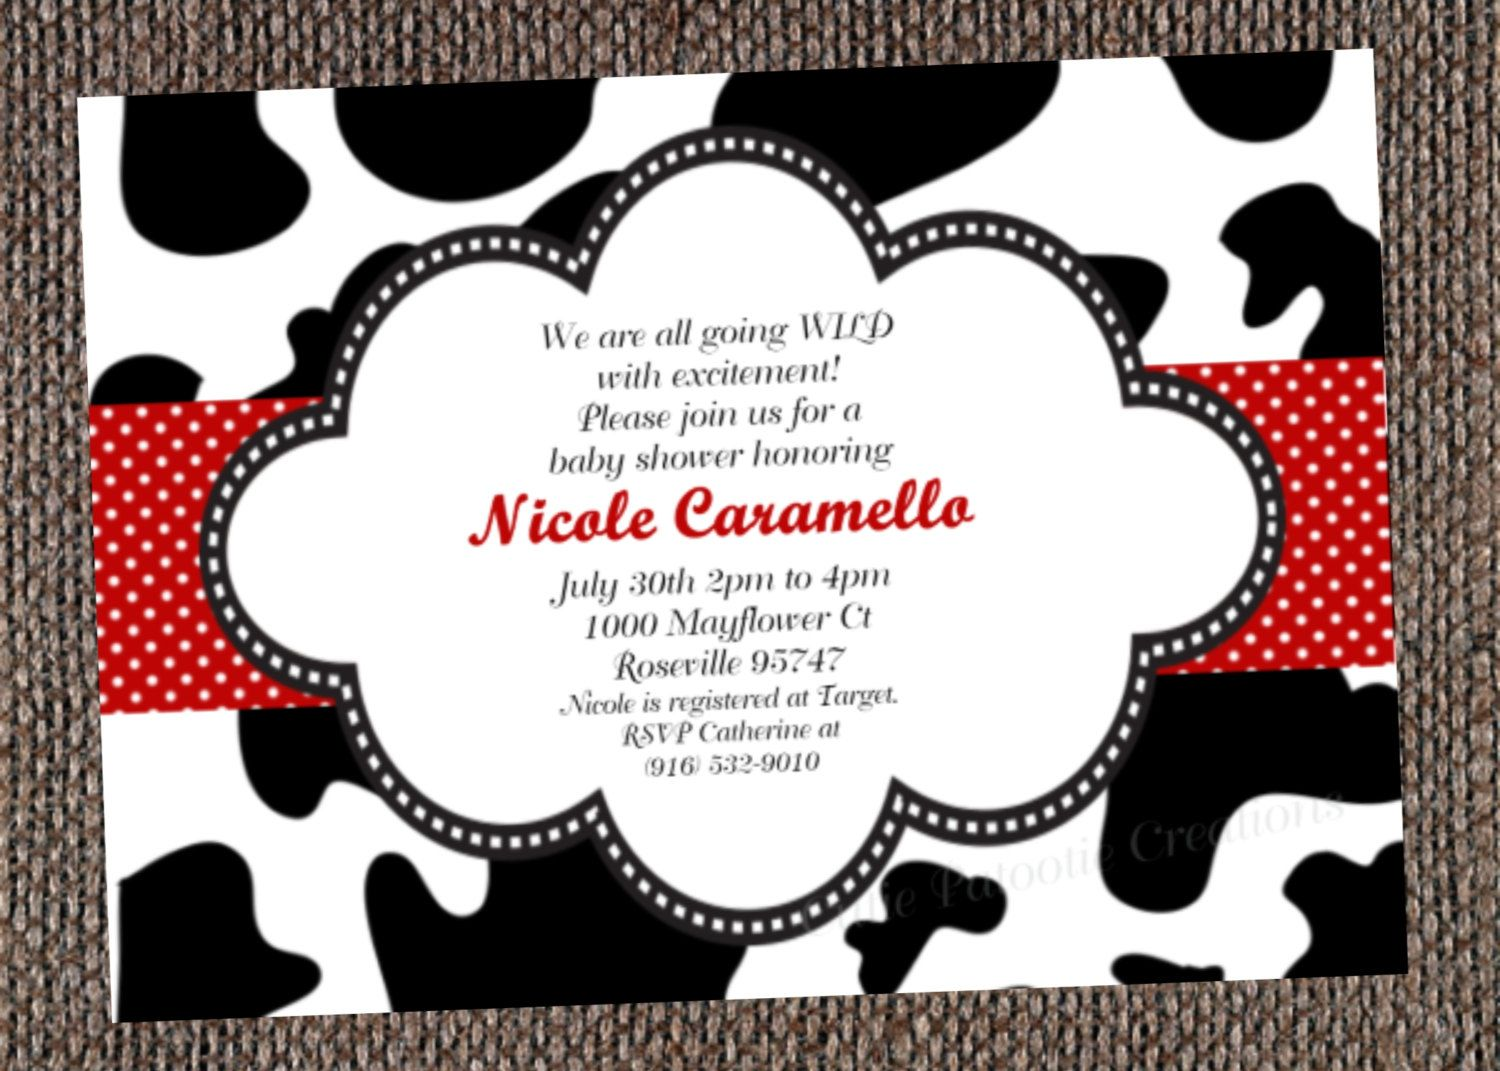 Pin by Katie Crain on Melissa Baby Shower | Pinterest | Cow print ...